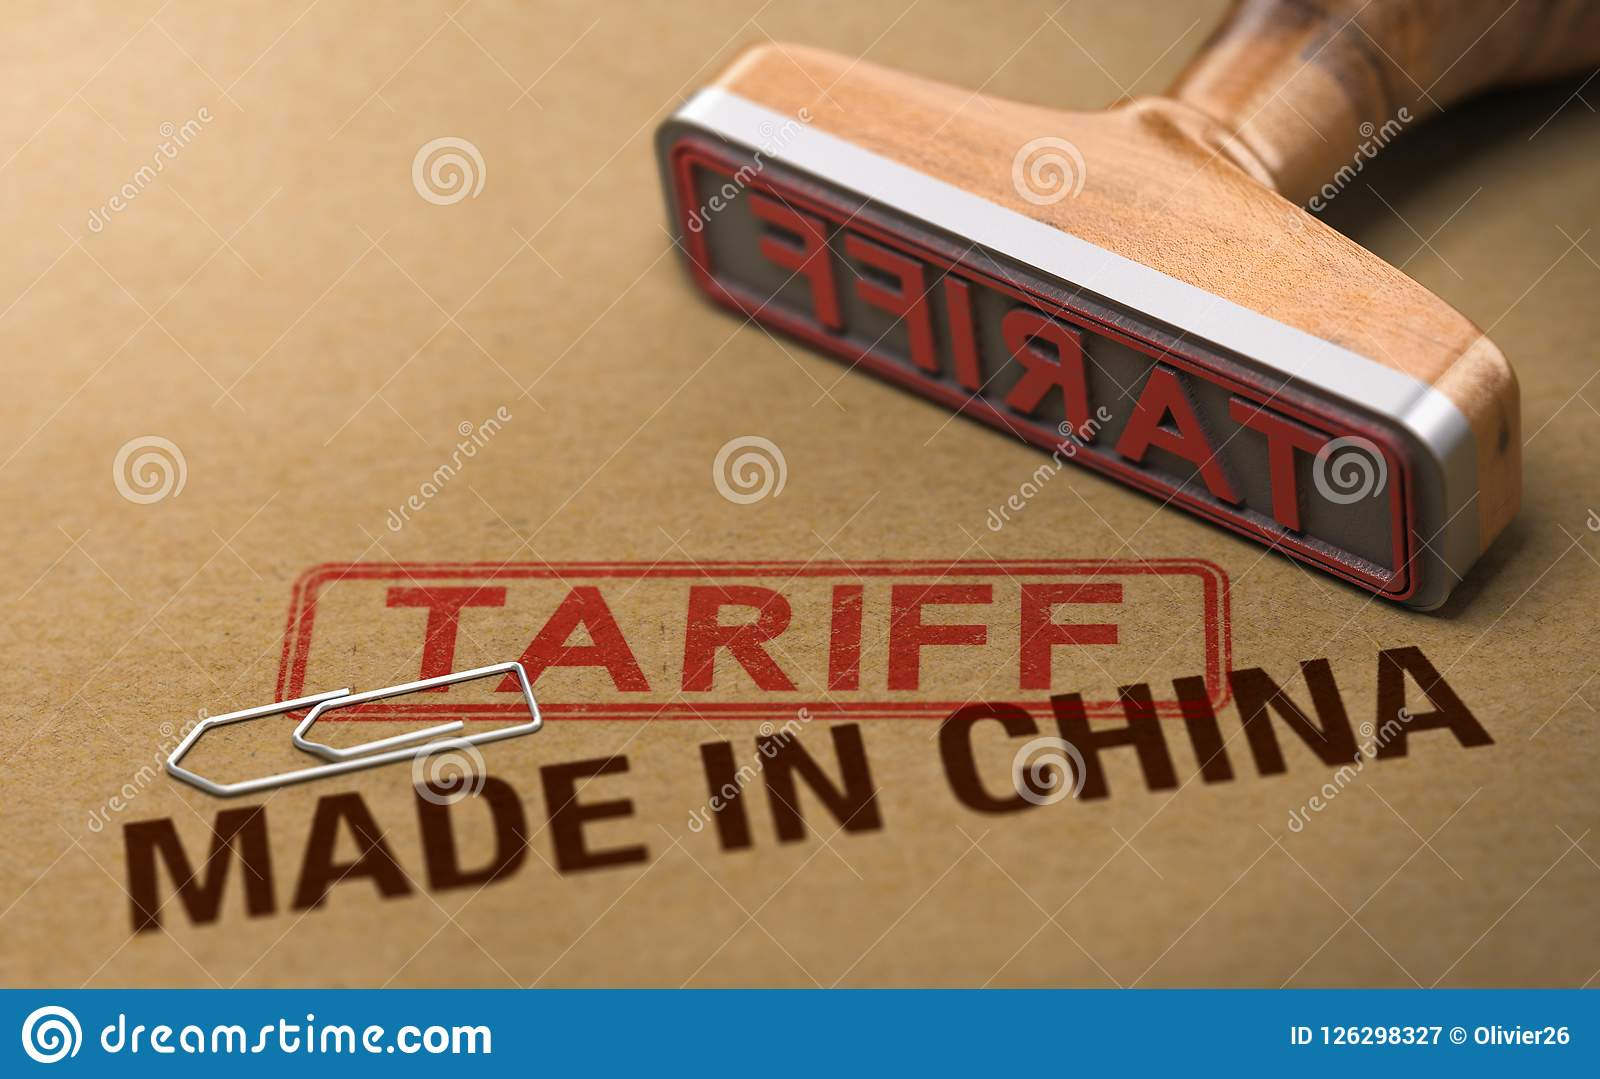 Trade War, Tariff For Goods and Products Made in China